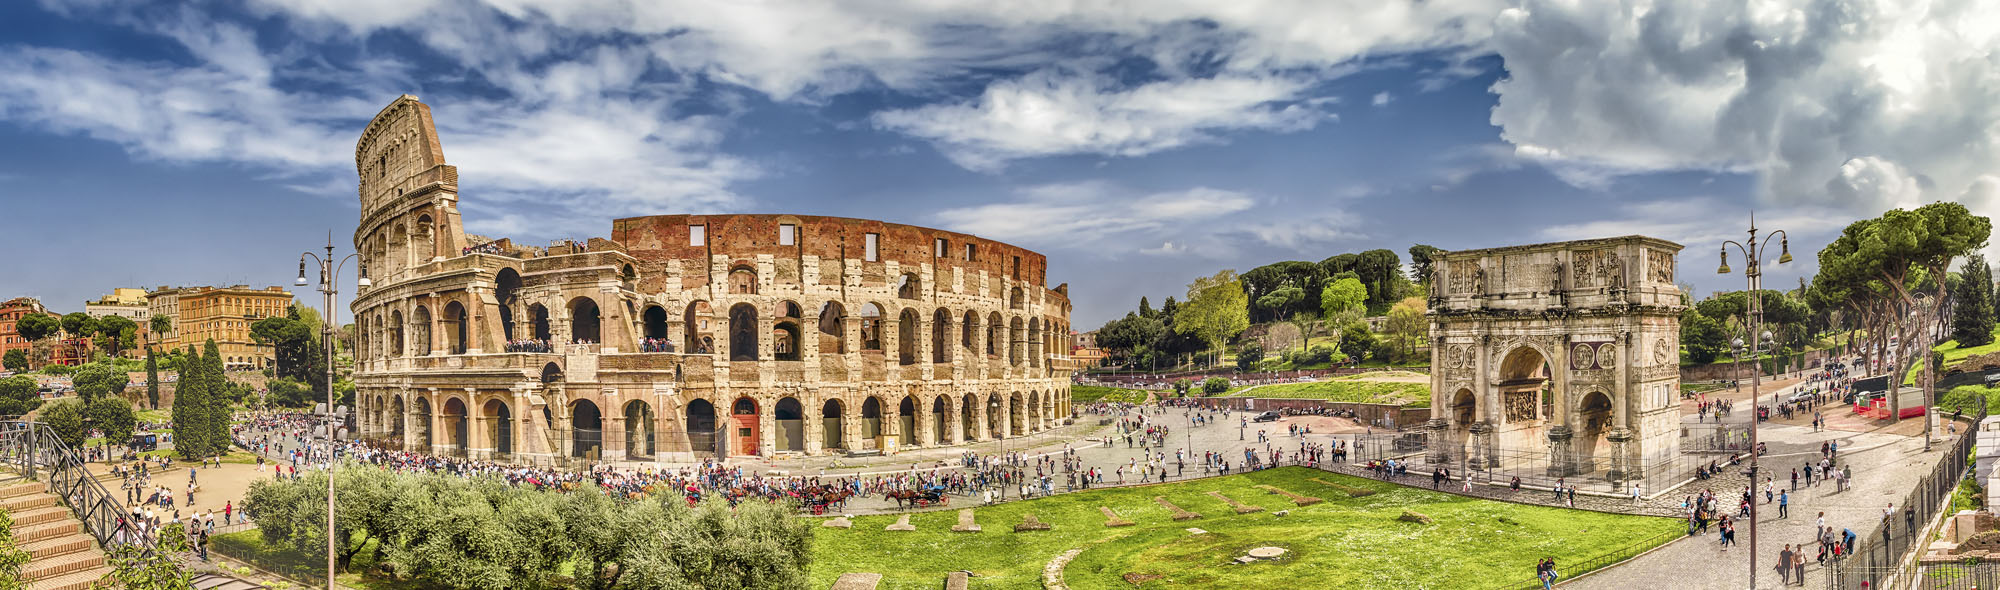 Panoramic view of Colosseum and Arch of Constantine, Rome, Italy